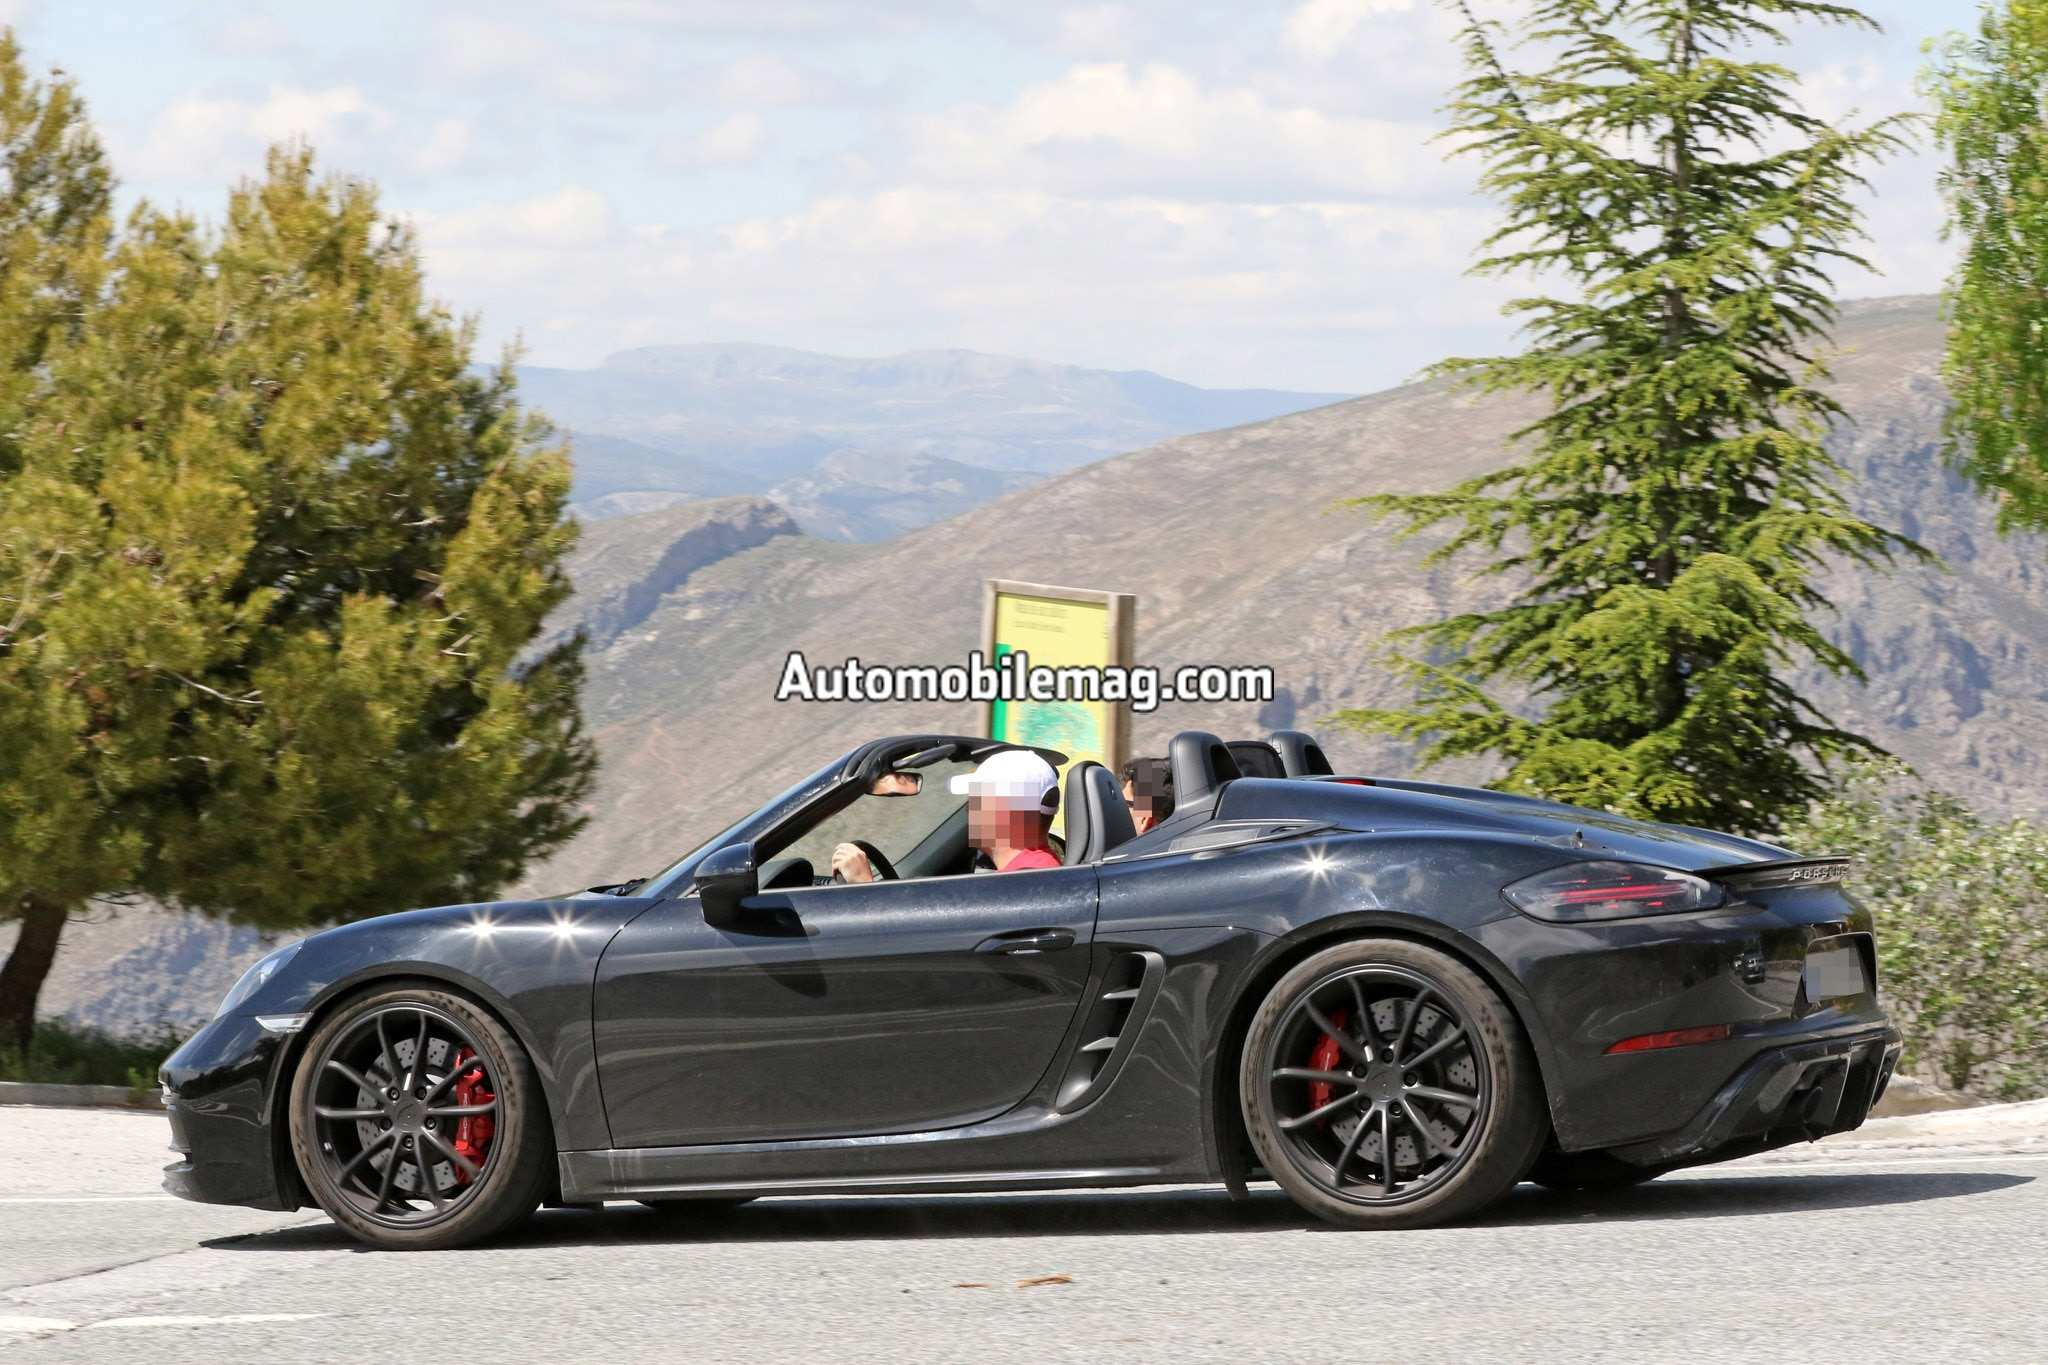 92 Concept of Porsche Boxster 2019 Overview with Porsche Boxster 2019